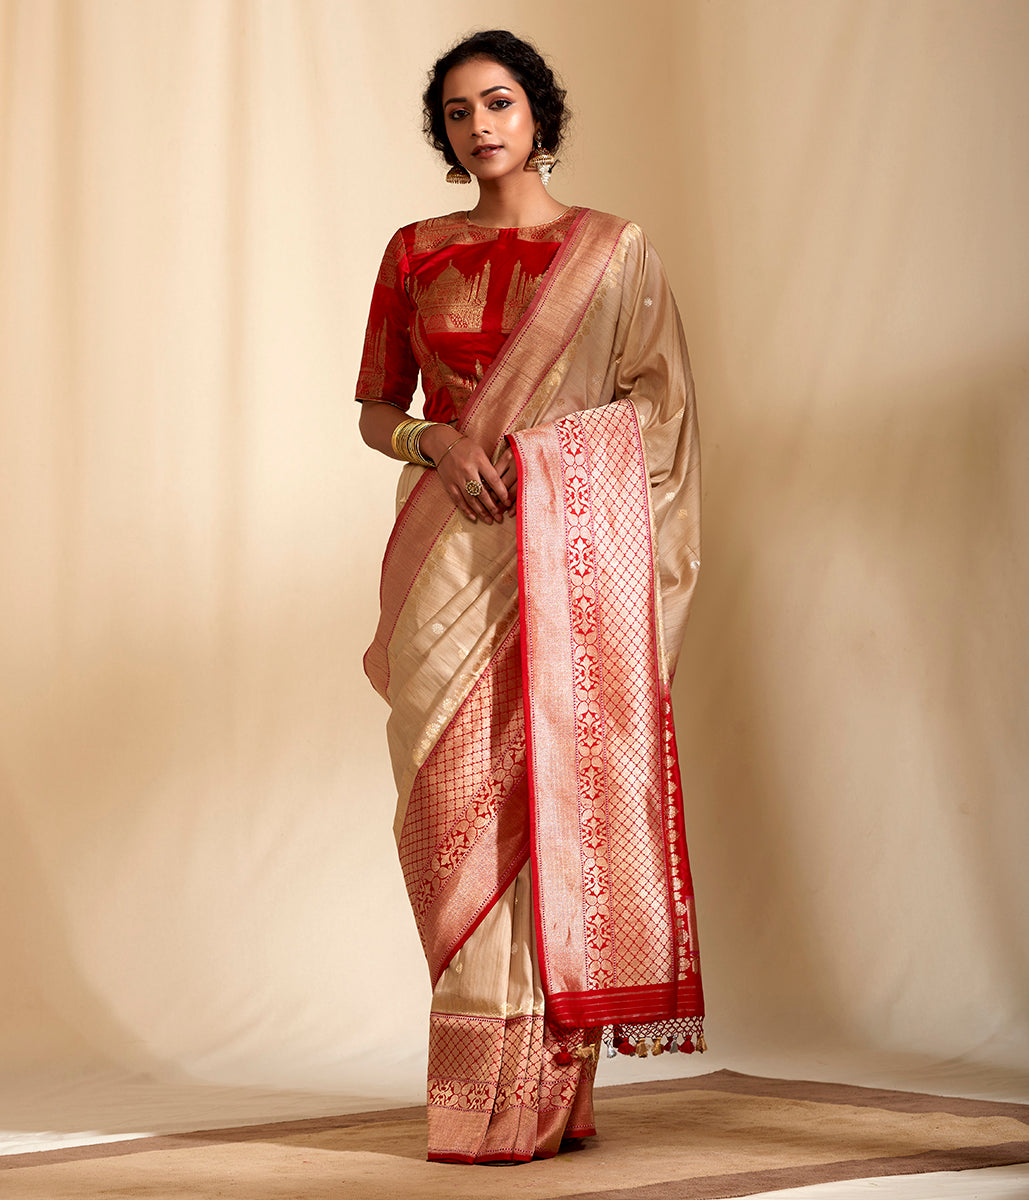 Handwoven banarasi dupion and tusser silk saree with contrast borders in red